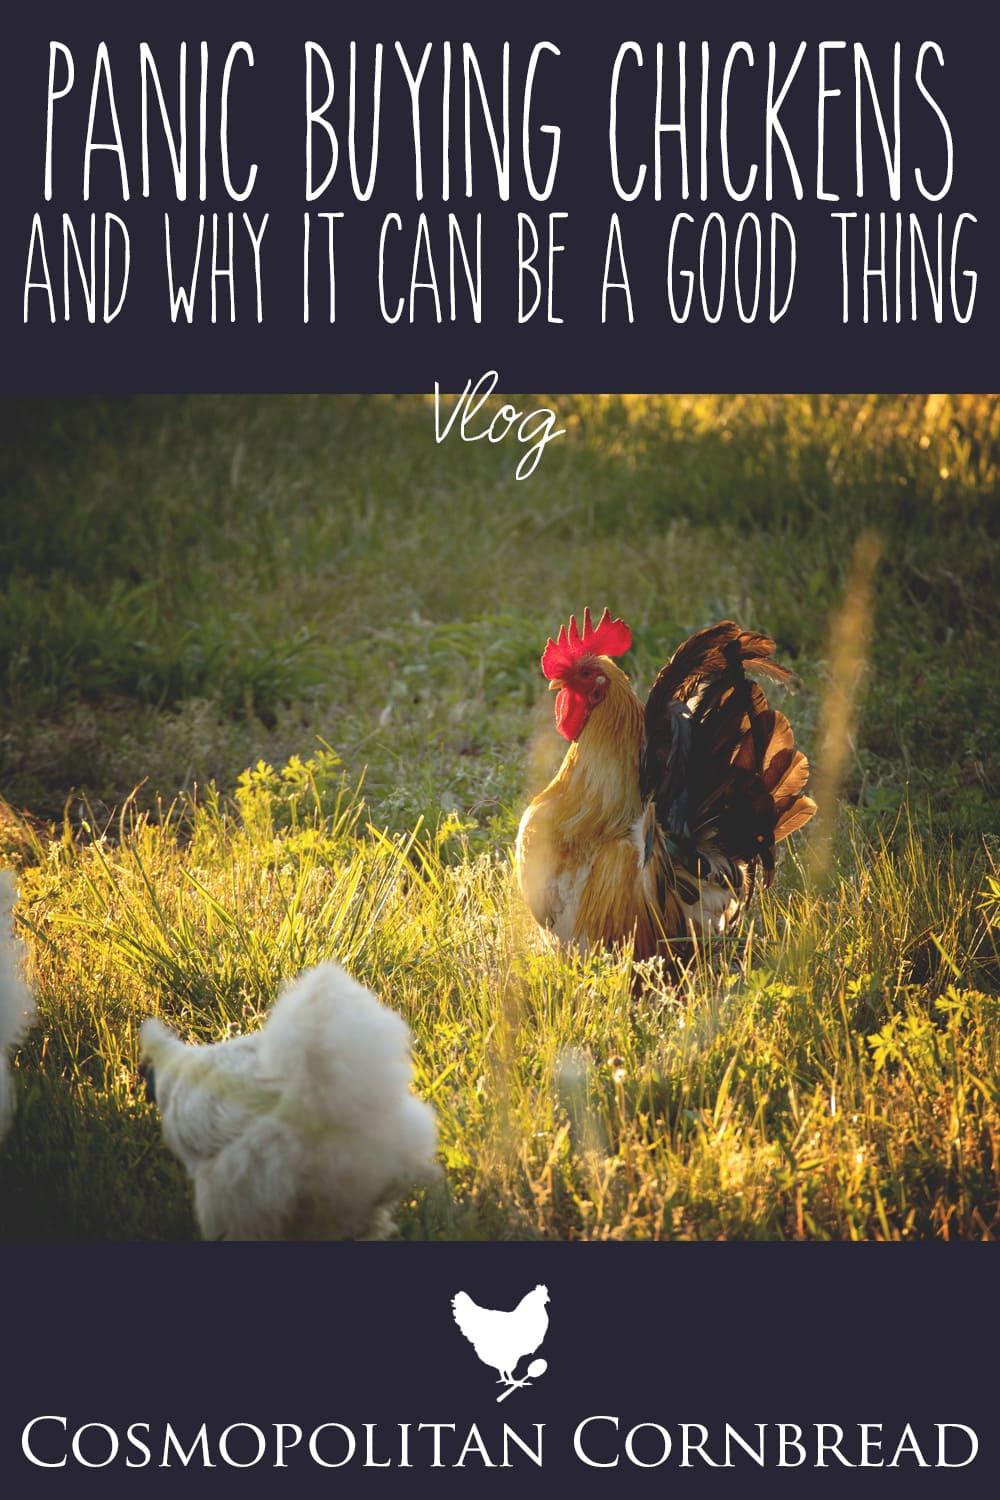 Today I shared the progress we have made on the new chicken coop. And then...panic buying chickens - and why I think it can be a good thing.